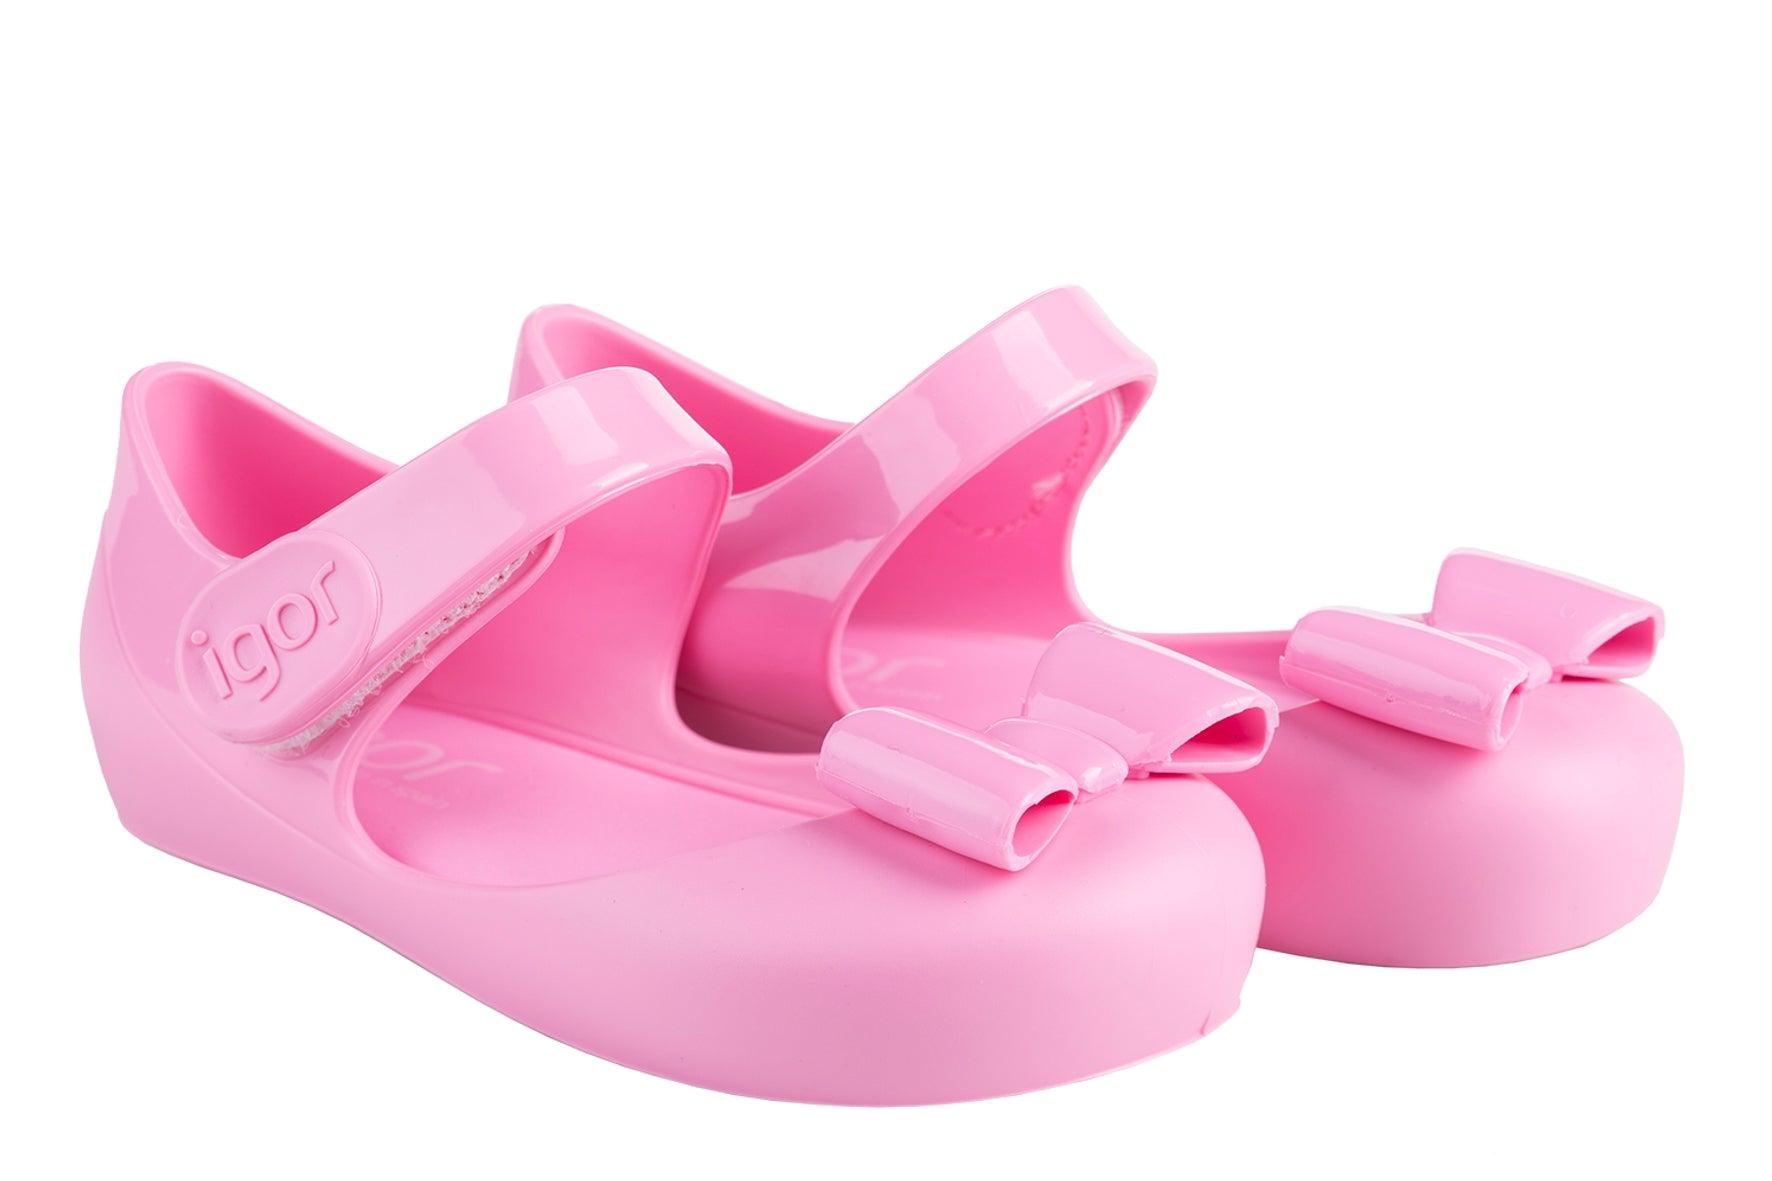 Igor Mia Jelly Sandals Pink Bow bYv7f6gy